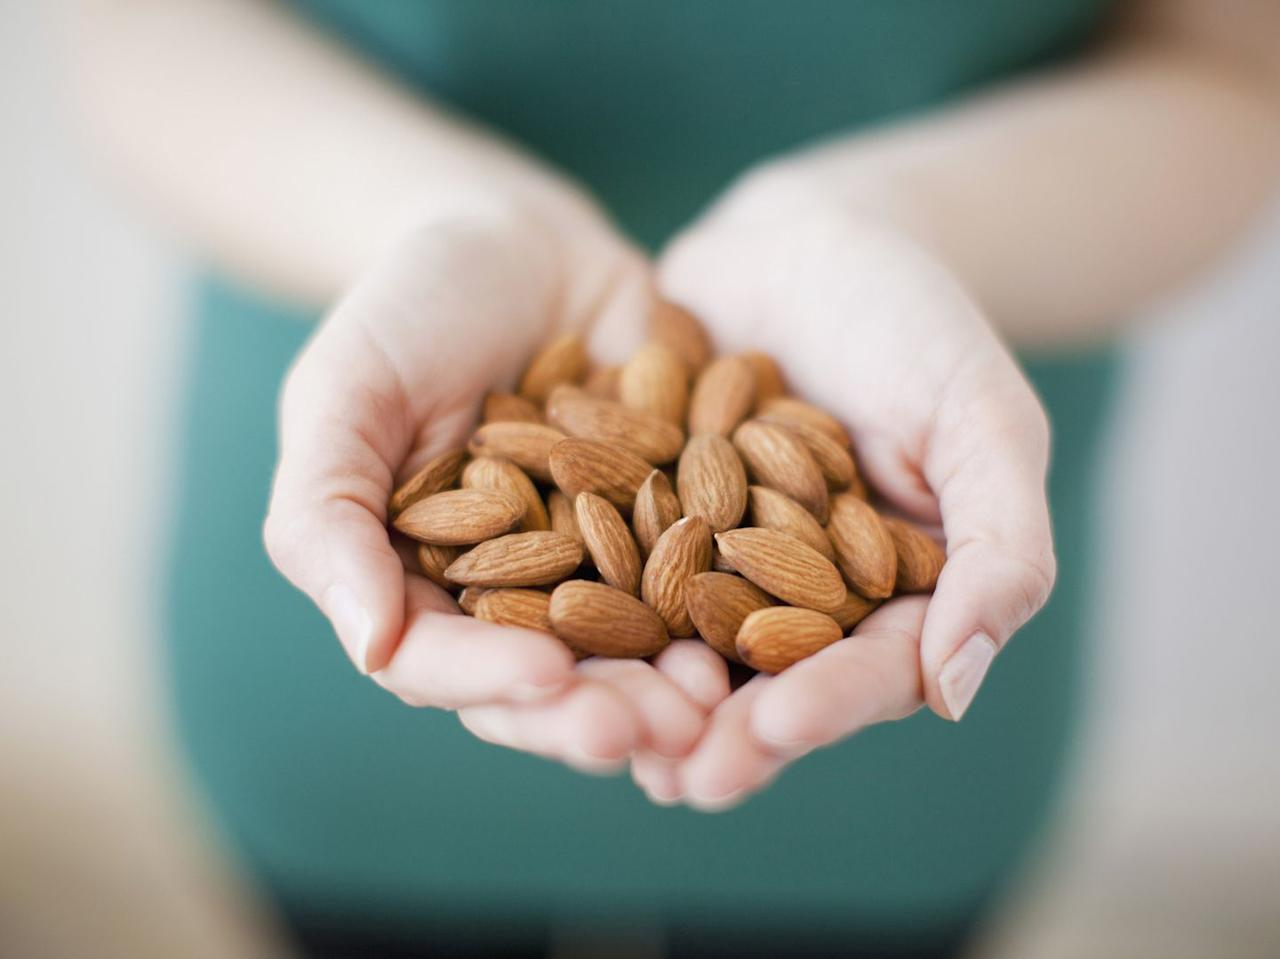 "<p>Rich in healthy fats, fiber, and protein, these nuts are made for more than snacking. Use slivered almonds as a topping for oatmeal or yogurt, add them to muffin recipes, or use <a rel=""nofollow"" href=""https://www.prevention.com/food-nutrition/healthy-eating/a20457989/homemade-almond-flour/"">almond flour</a> in place of regular flour in pancakes.</p>"